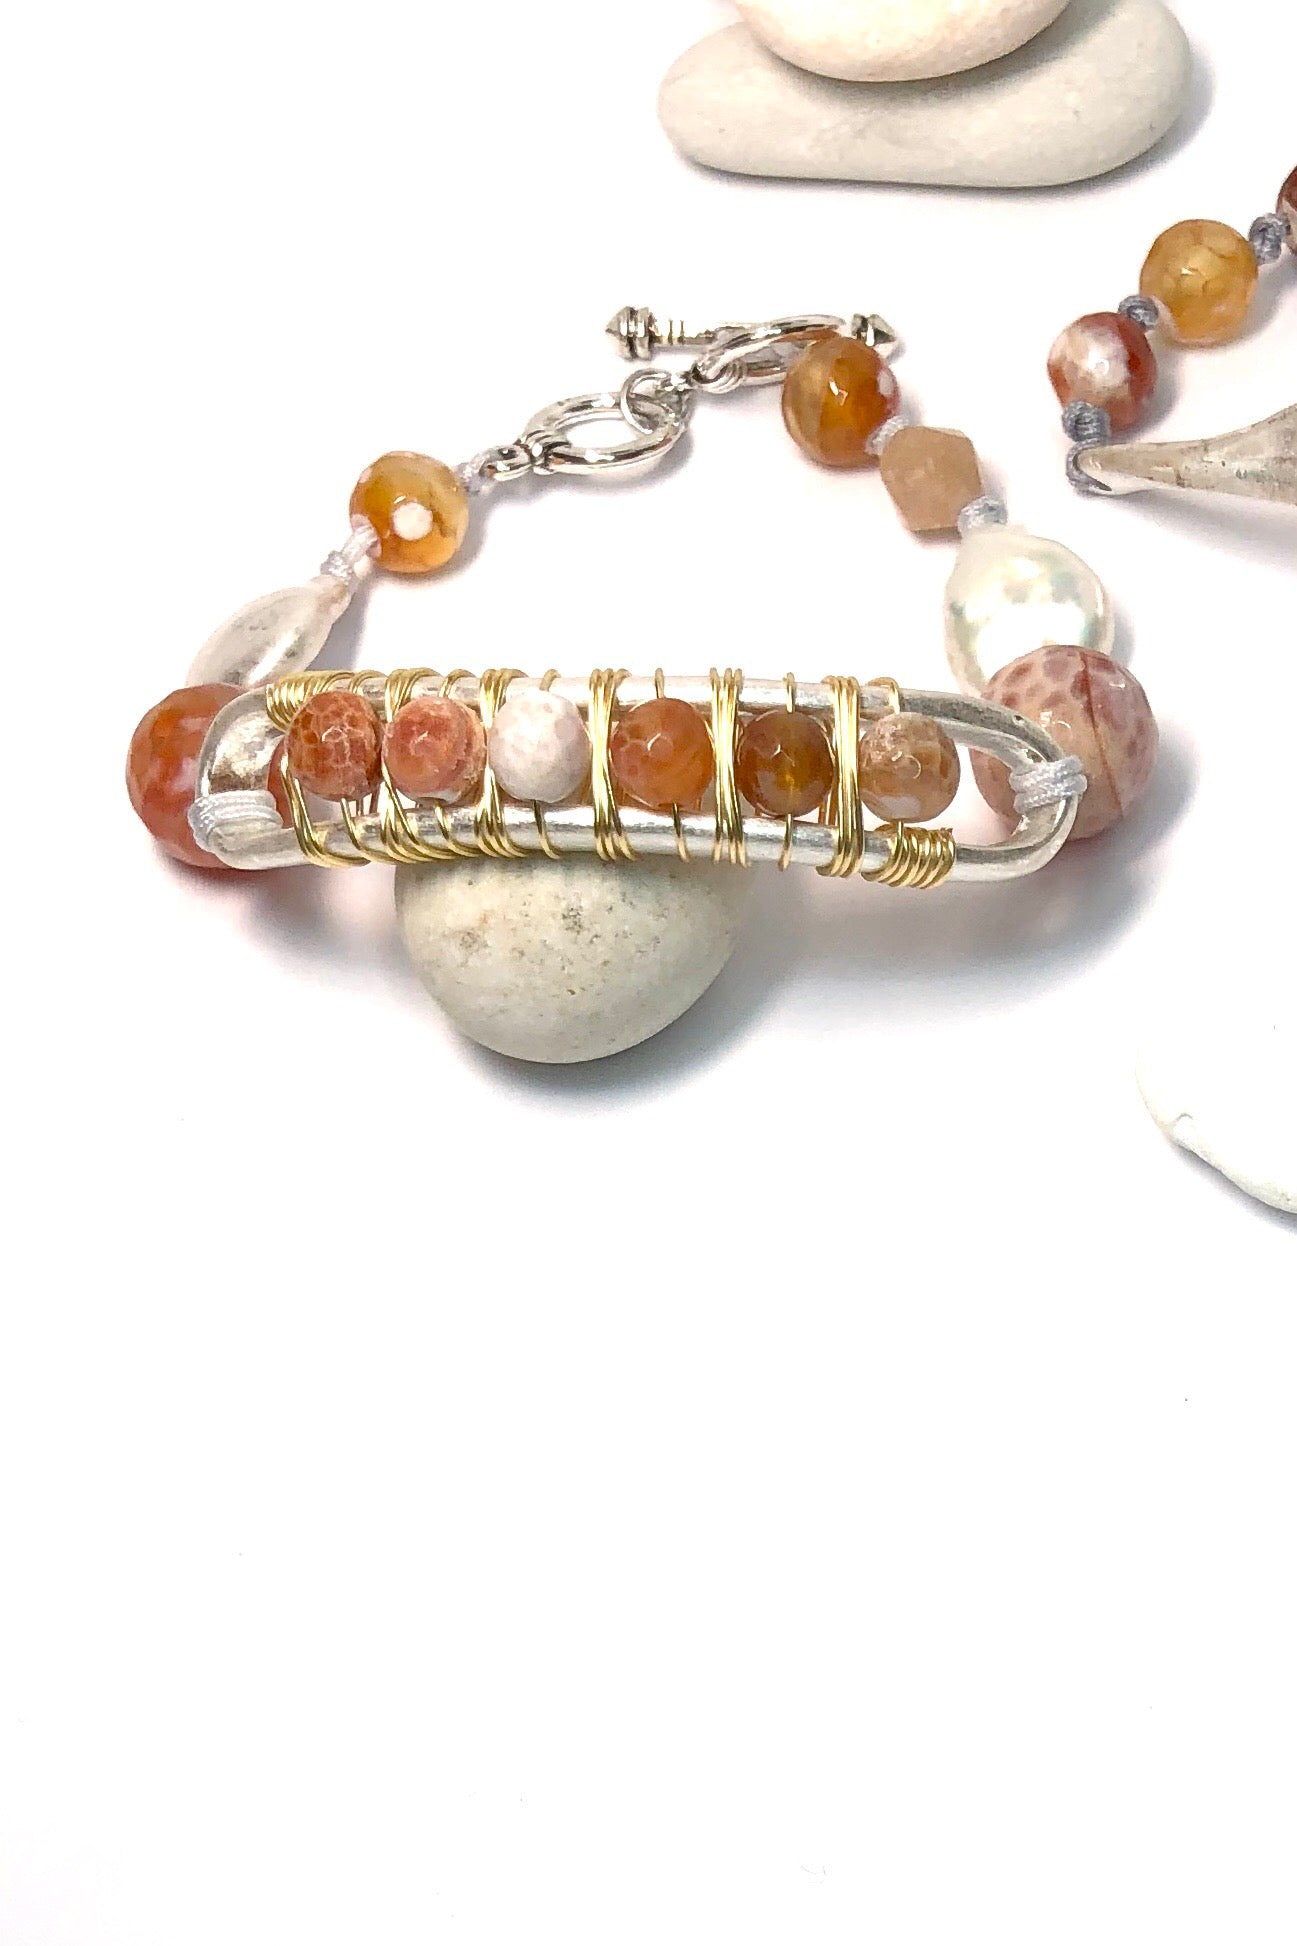 The Pebble Carnelian Arch bracelet has a rustic earth vibe featuring natural Carnelian gemstone, T-bar closure and white metal.